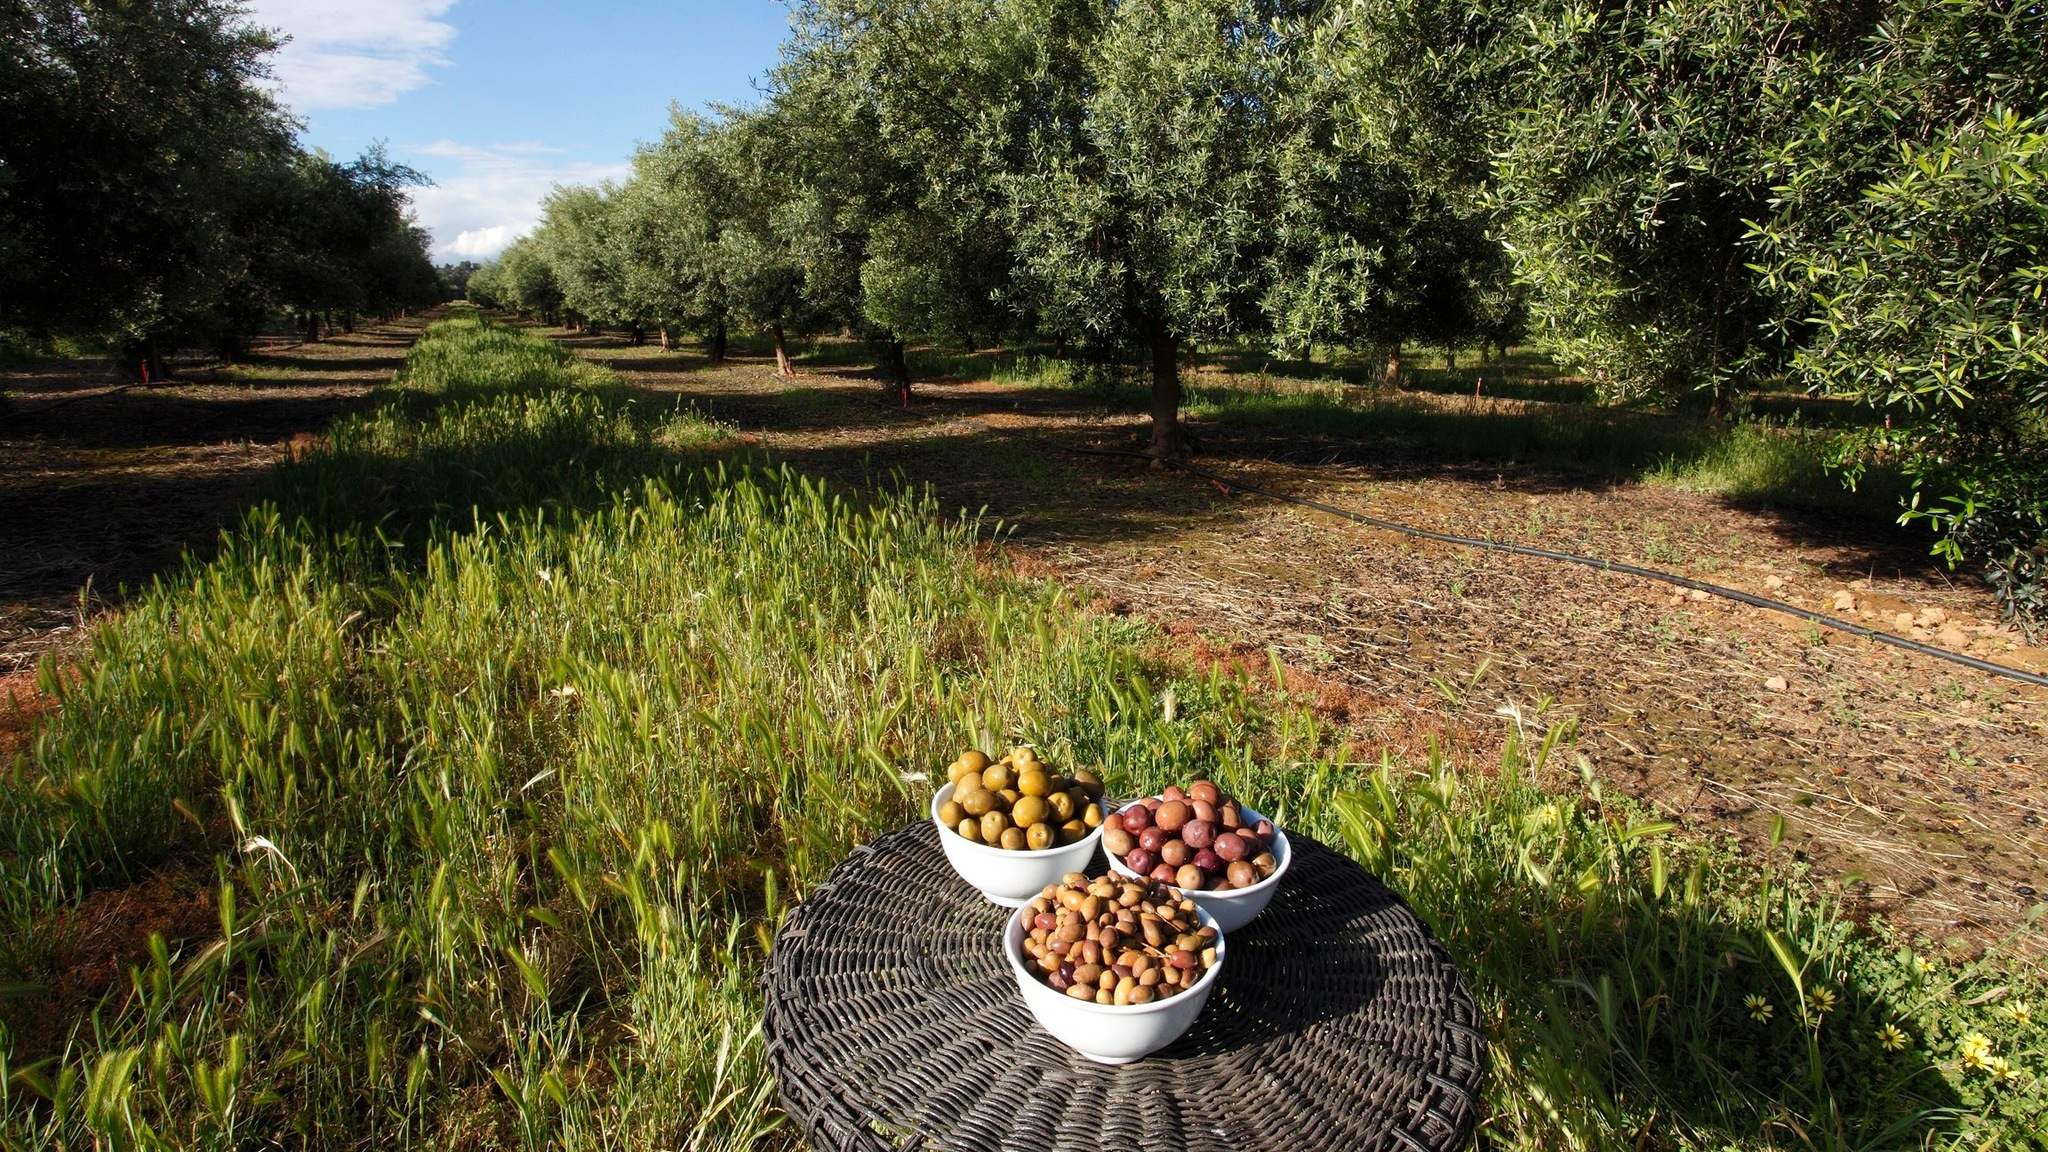 A lunch in the Olive Grove